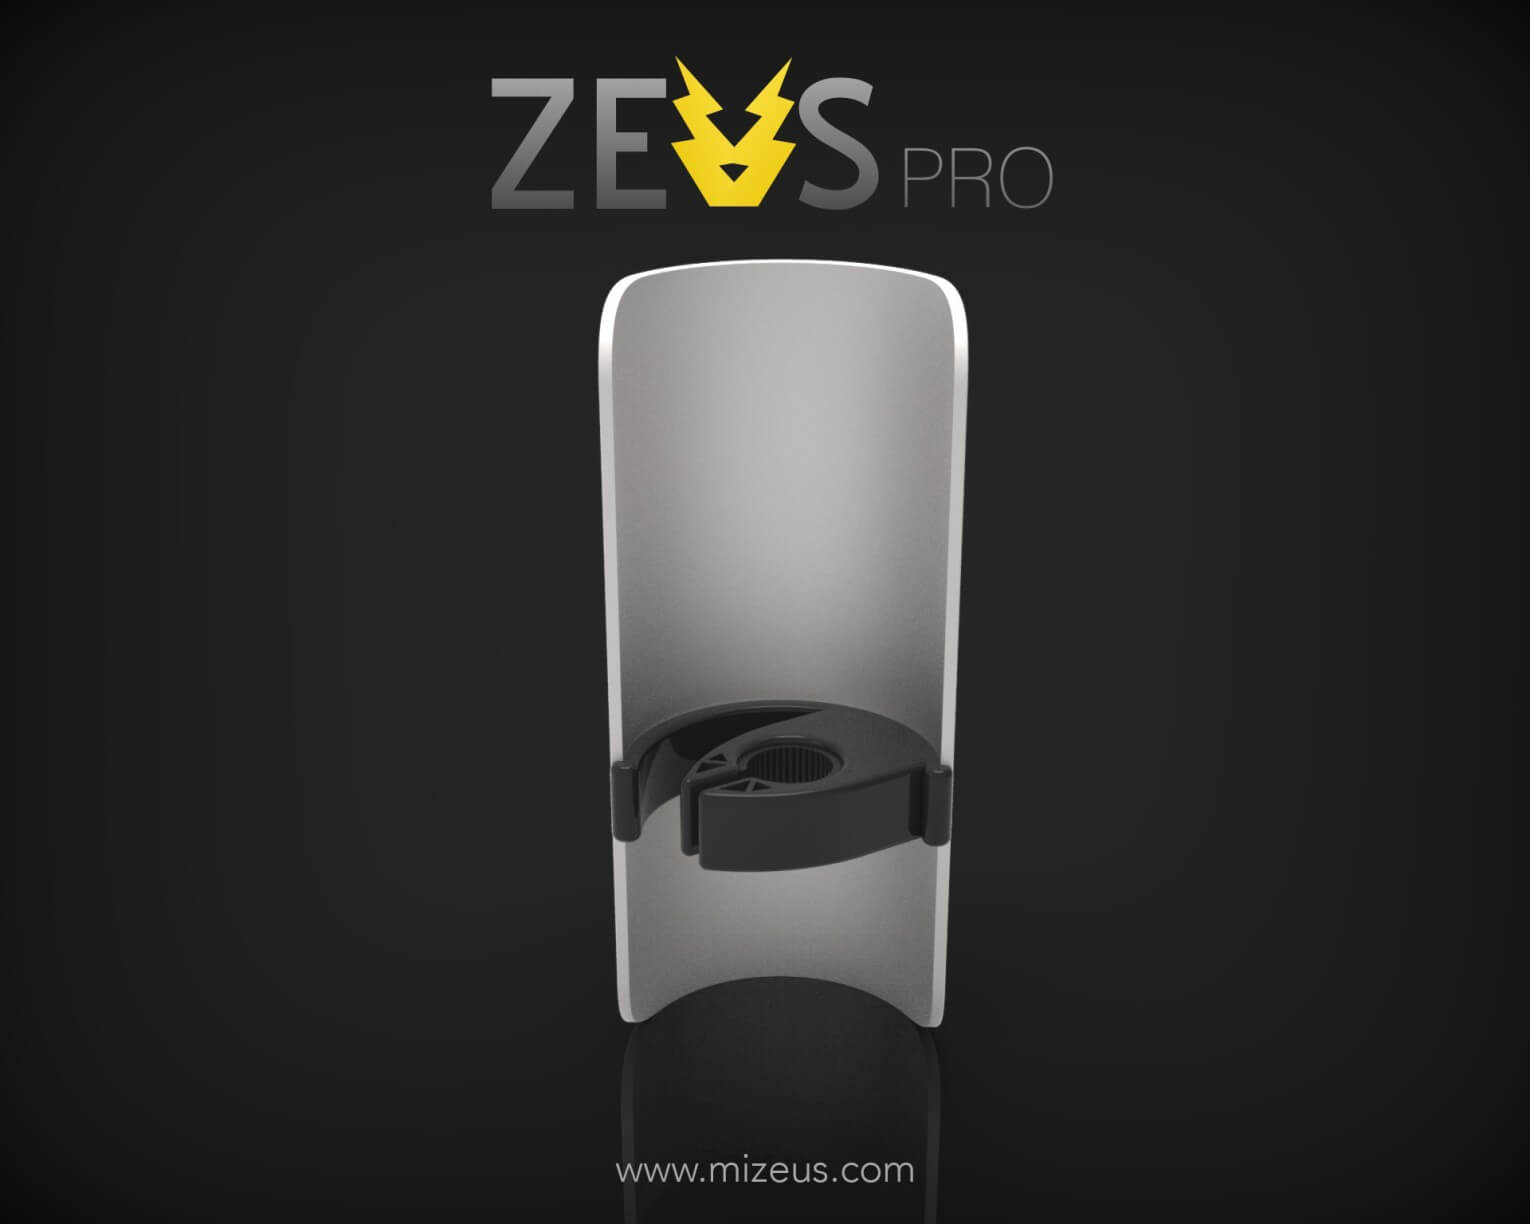 ZeusPro - The Ultimate Wireless Network Solution